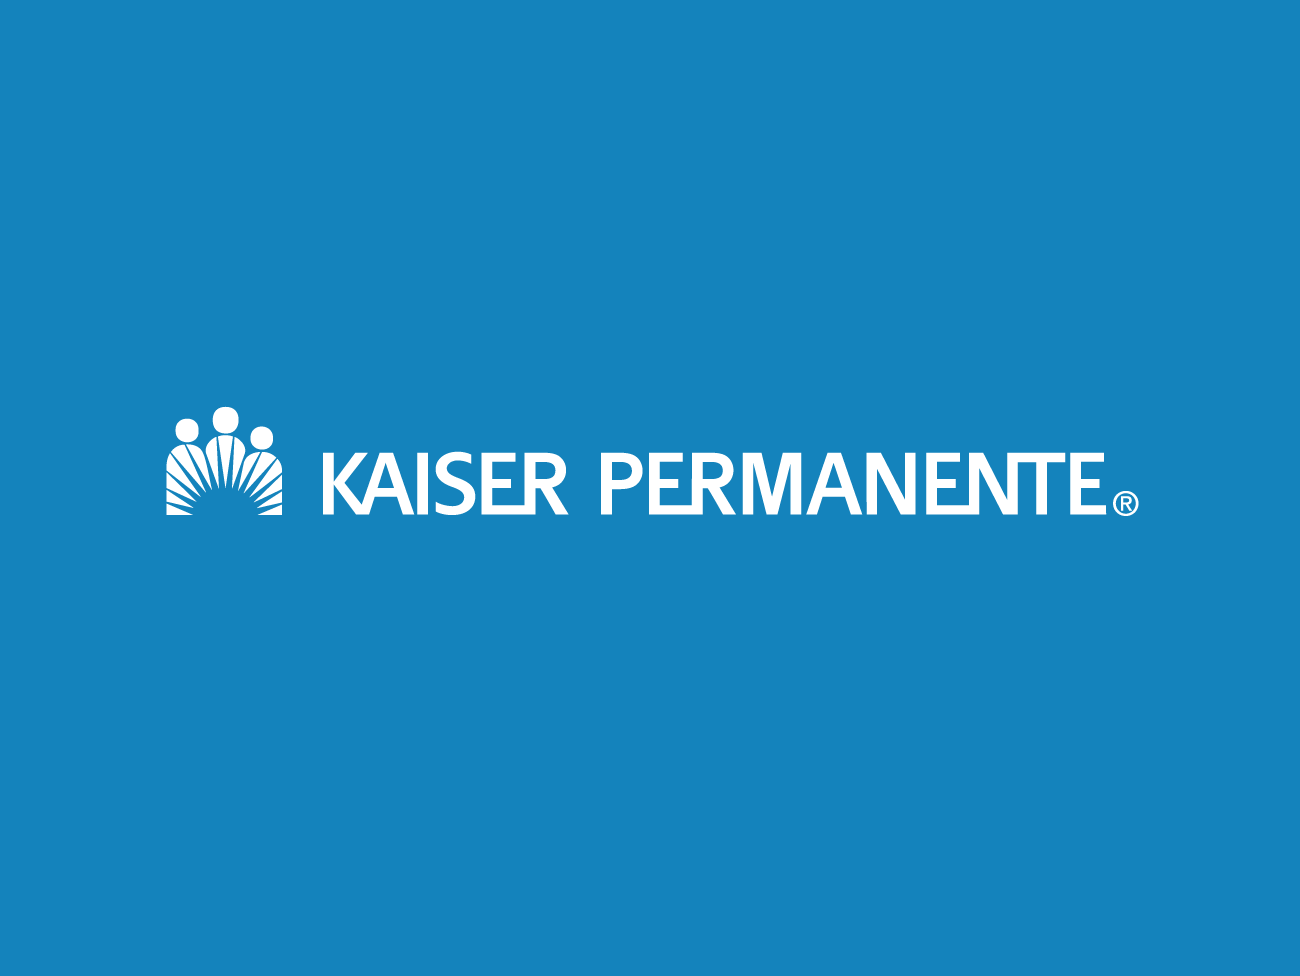 White Kaiser Permanente logo on blue background